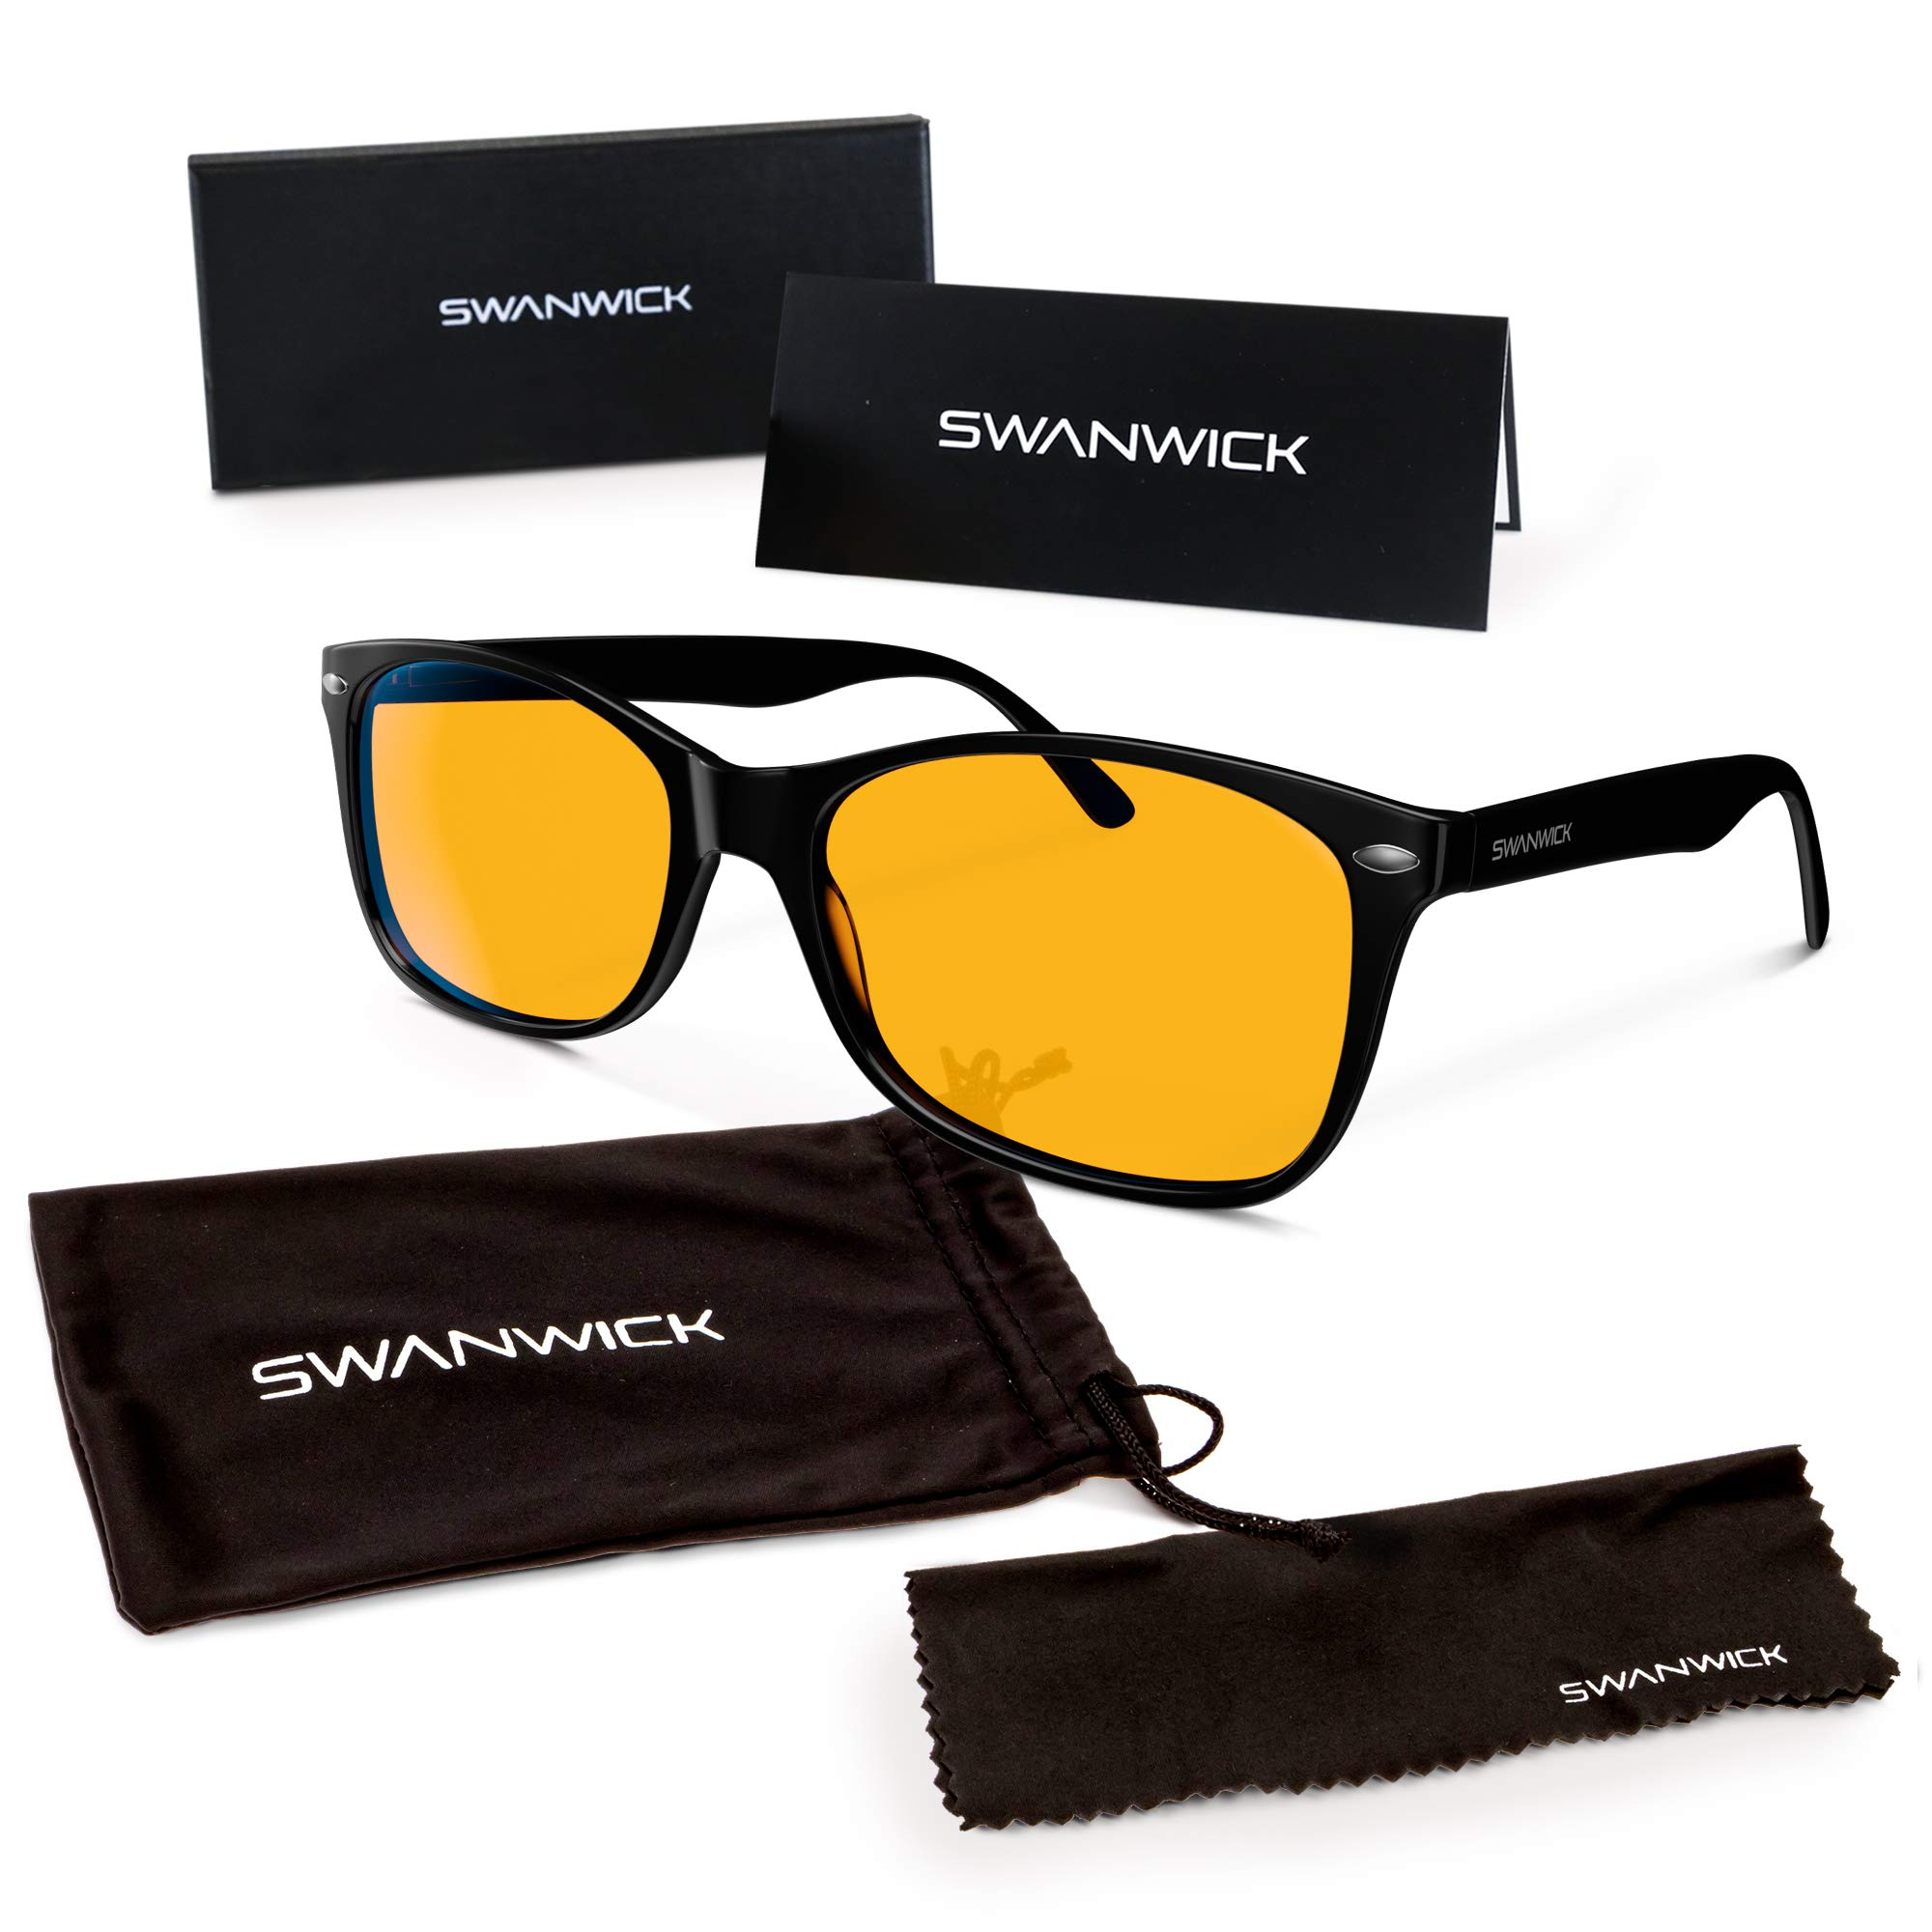 Swannies Blue Light Blocking Computer Glasses with Orange Lens for Night Use - UV Protection Anti Eye Strain Tired Eye Relief (Black) Regular by Swanwick Sleep